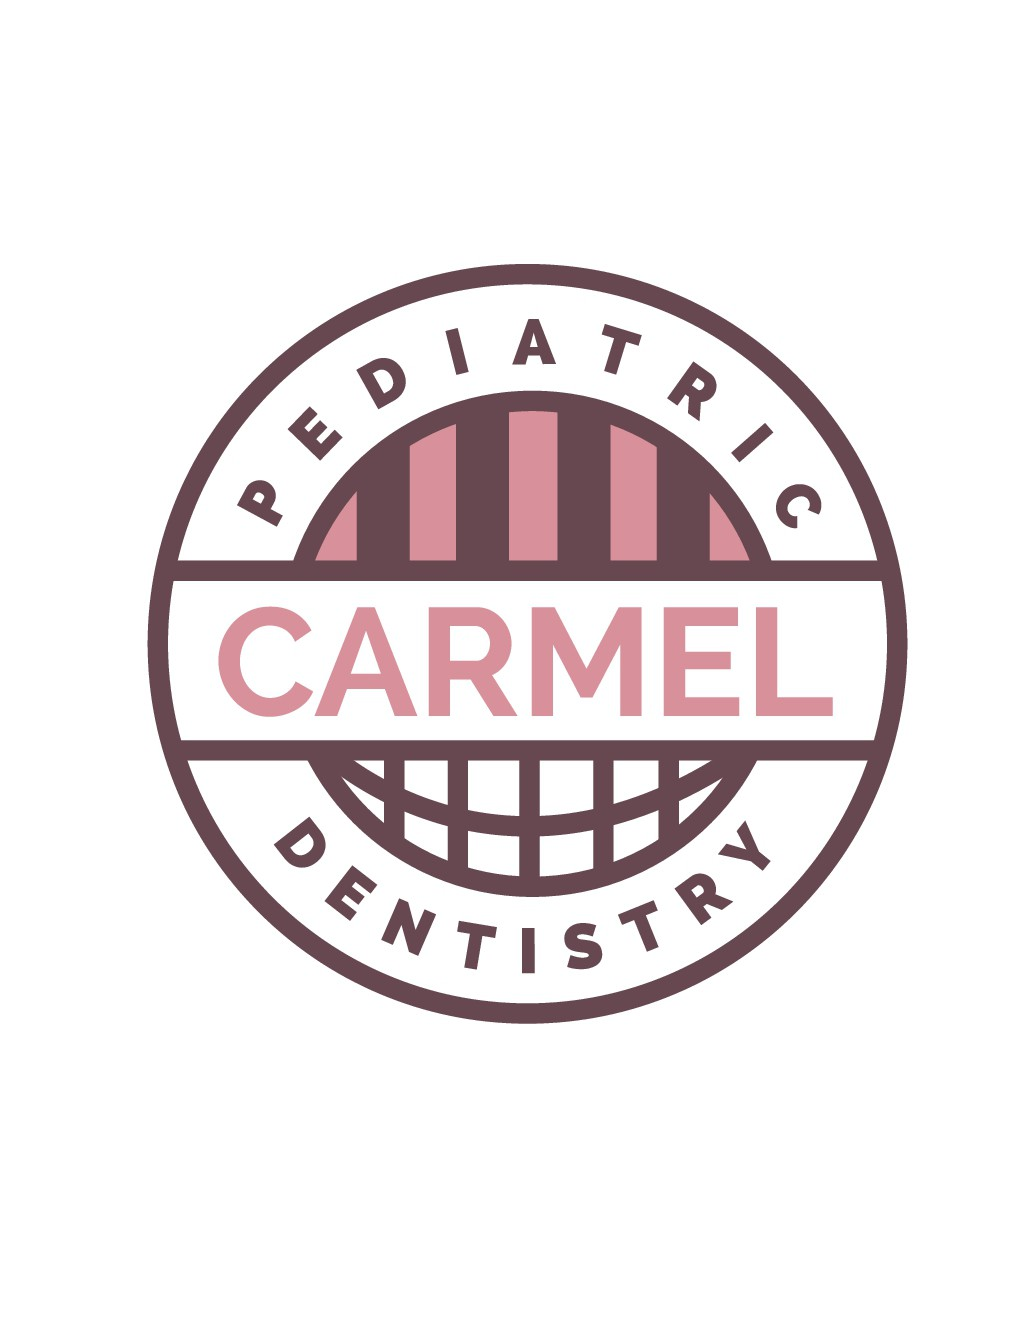 Boutique pediatric dental practice appealing to kids and moms